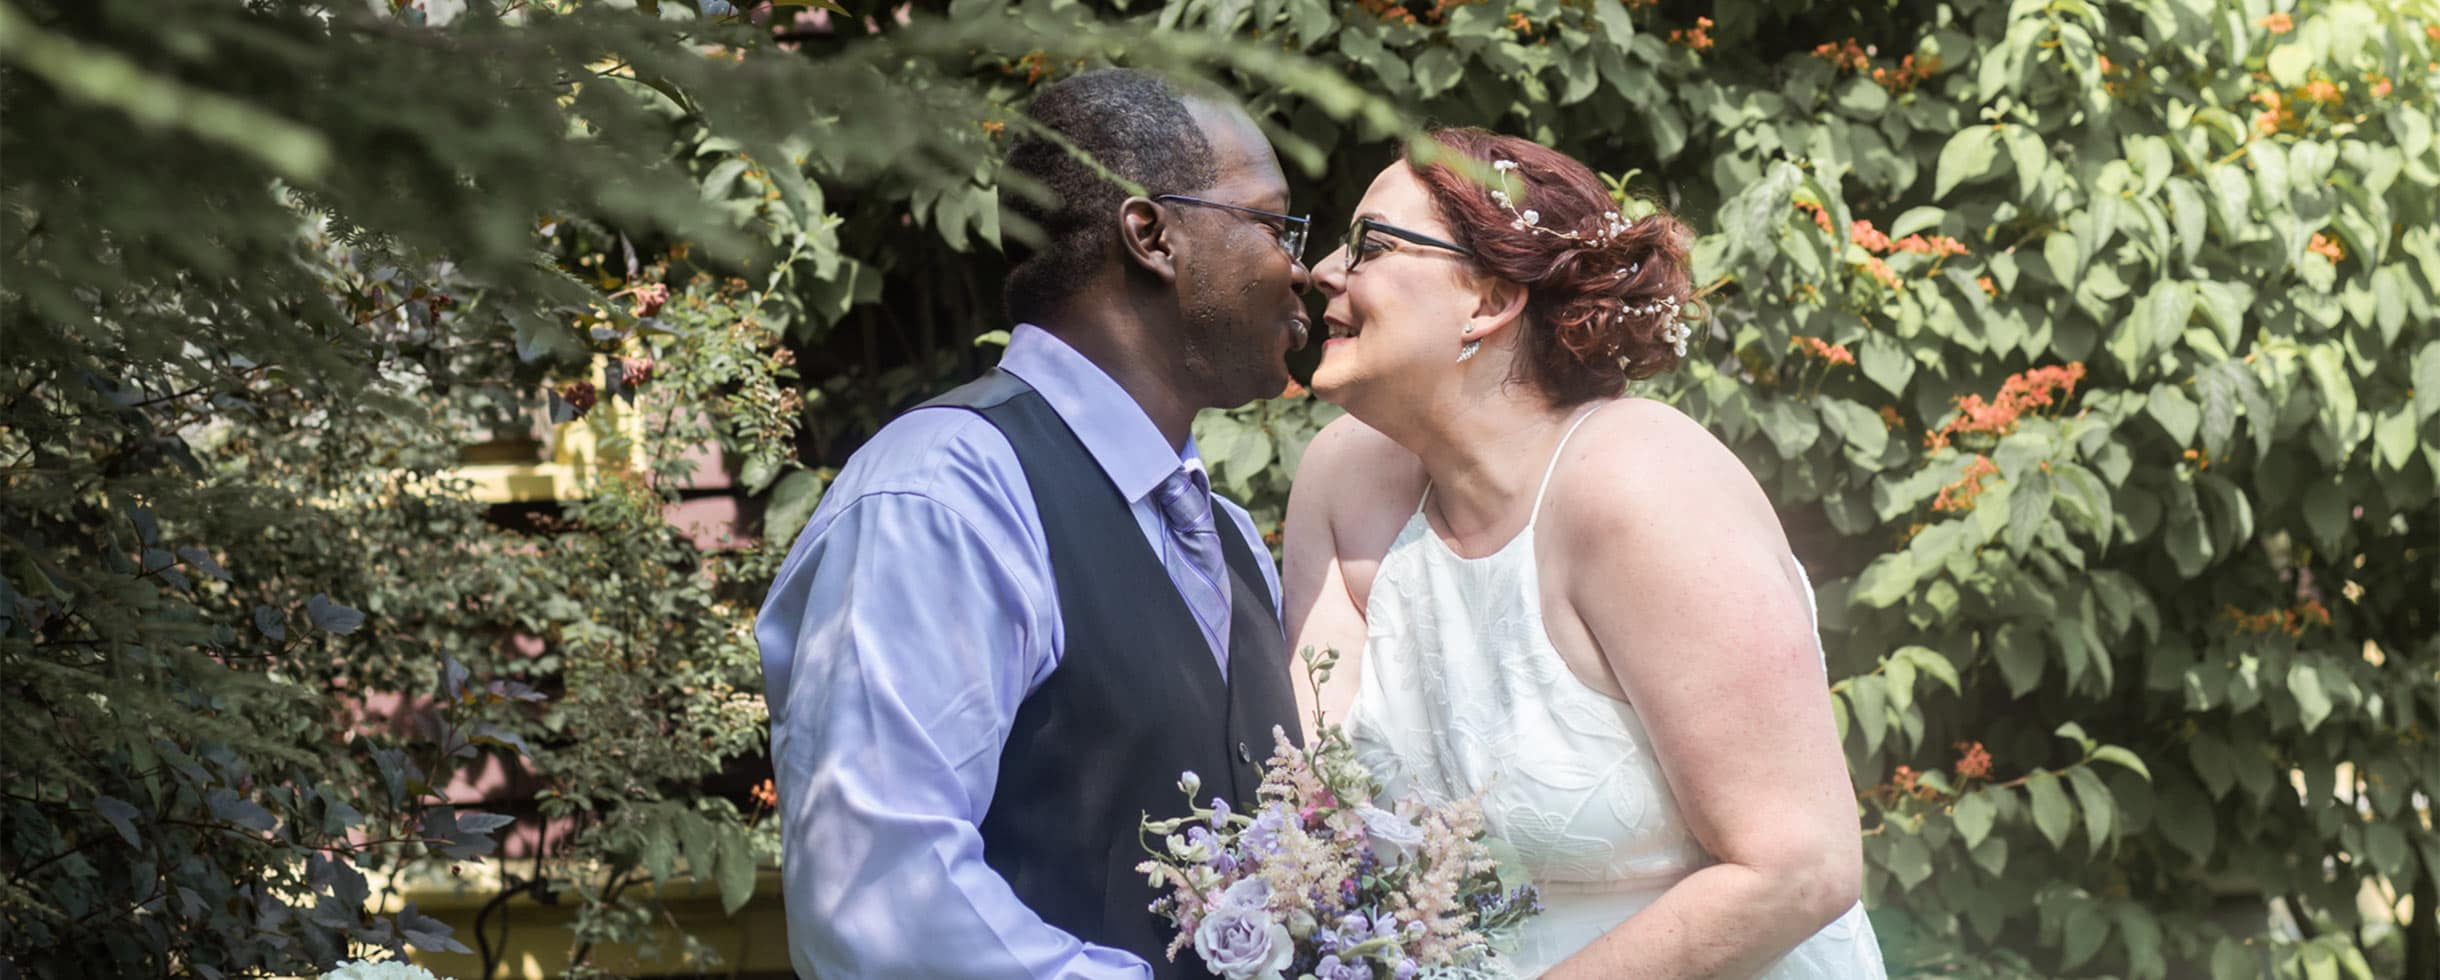 Bride and Groom about to share a kiss in the garden